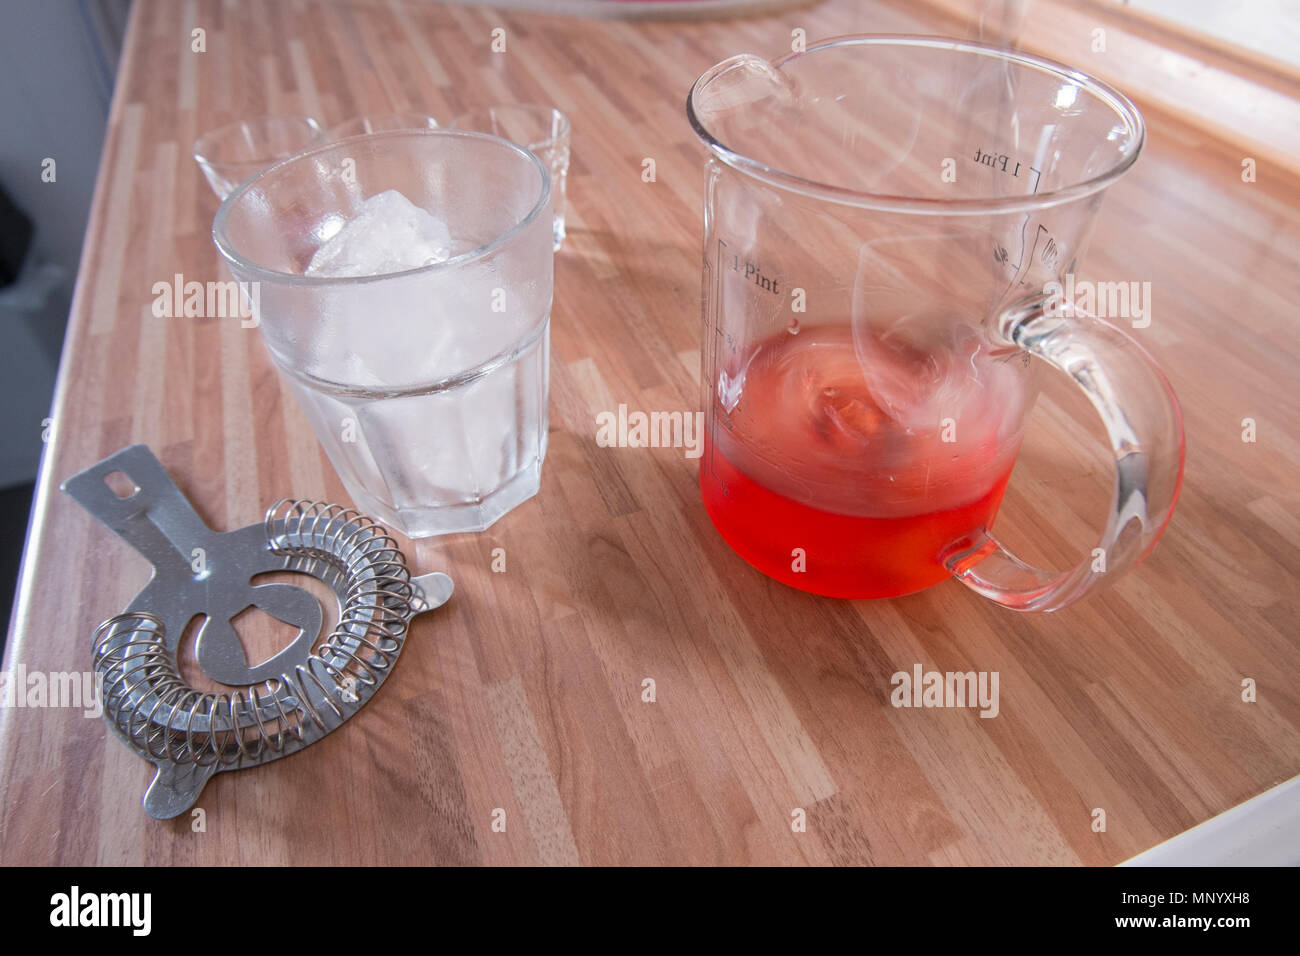 Mixing a negroni cocktail on wooden kitchen worktop Stock Photo